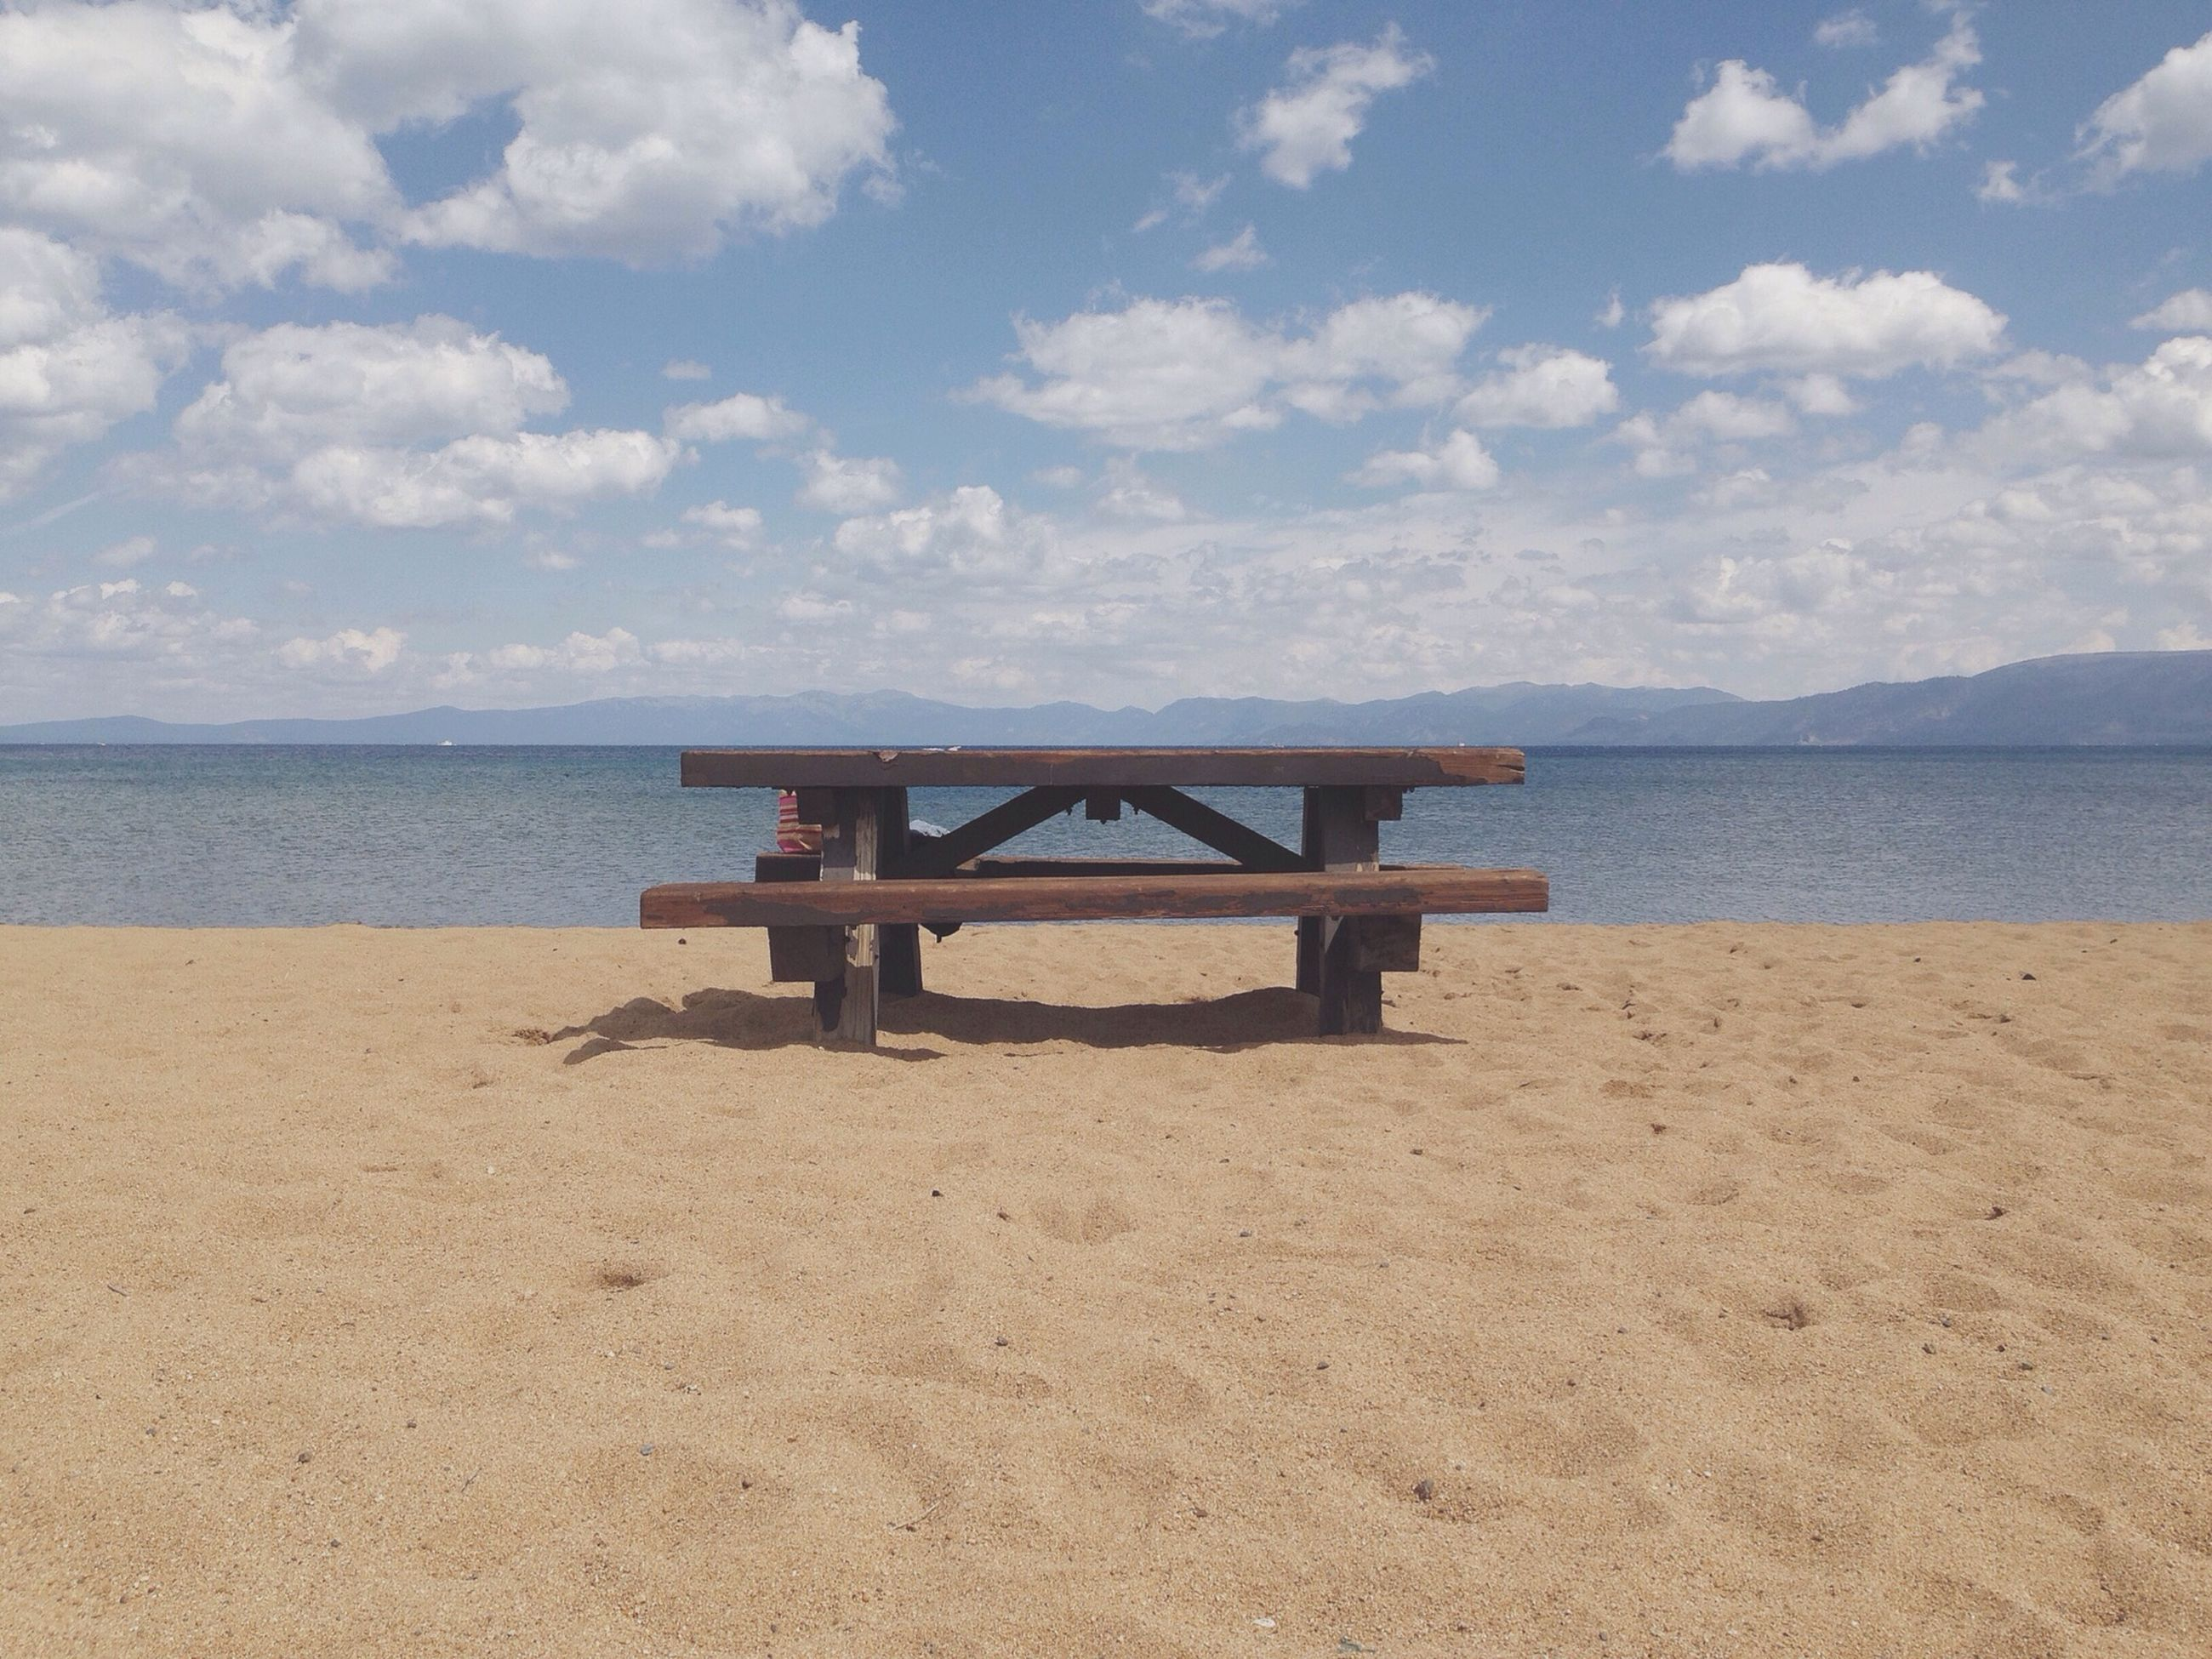 sea, water, sky, tranquil scene, tranquility, beach, scenics, horizon over water, beauty in nature, cloud - sky, pier, nature, sand, cloud, built structure, shore, idyllic, day, calm, outdoors